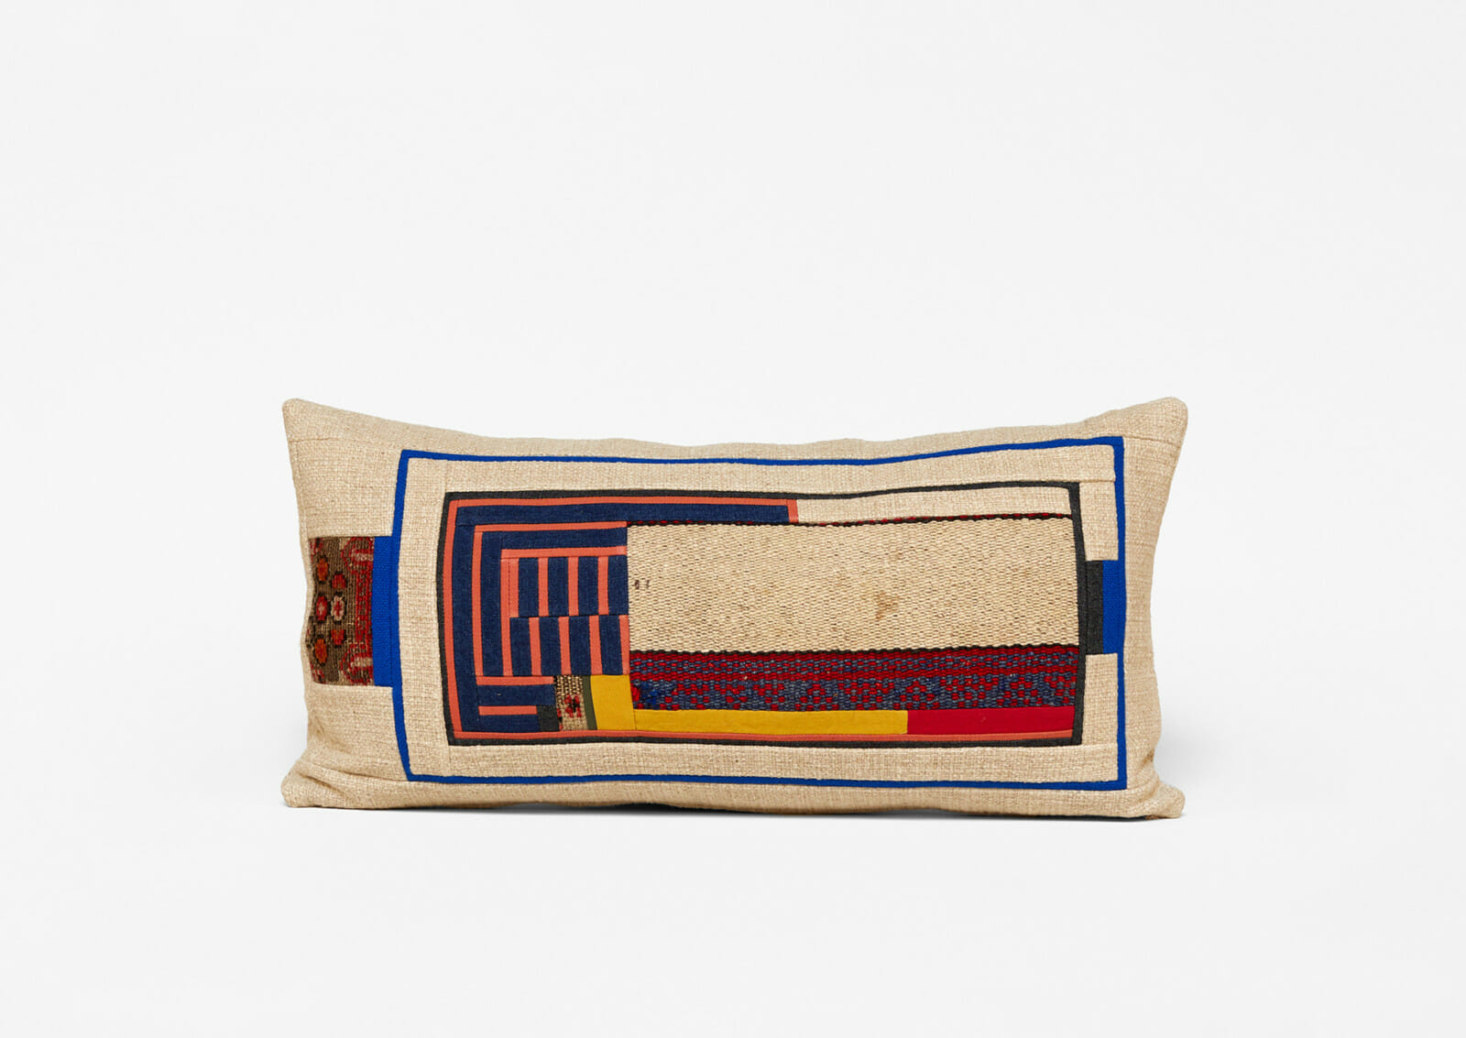 Crazy Beautiful: Adam Pogue's Hand-Stitched Pillows and Textiles Inspired by Korean Pojagi